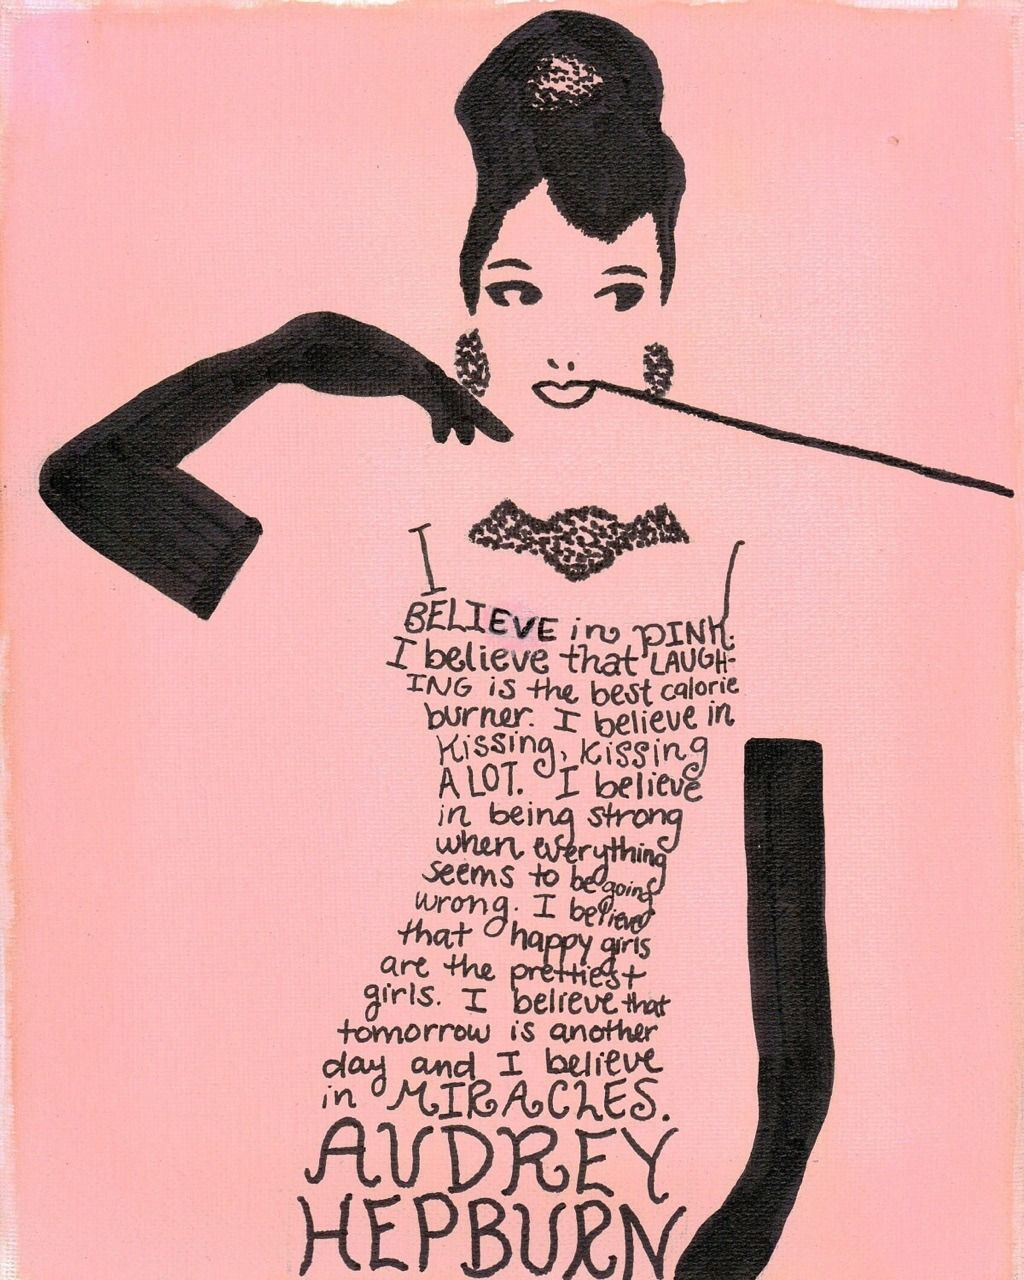 You Know When You Love Someone Girly Quotes Audrey Hepburn Audrey Hepburn Quotes